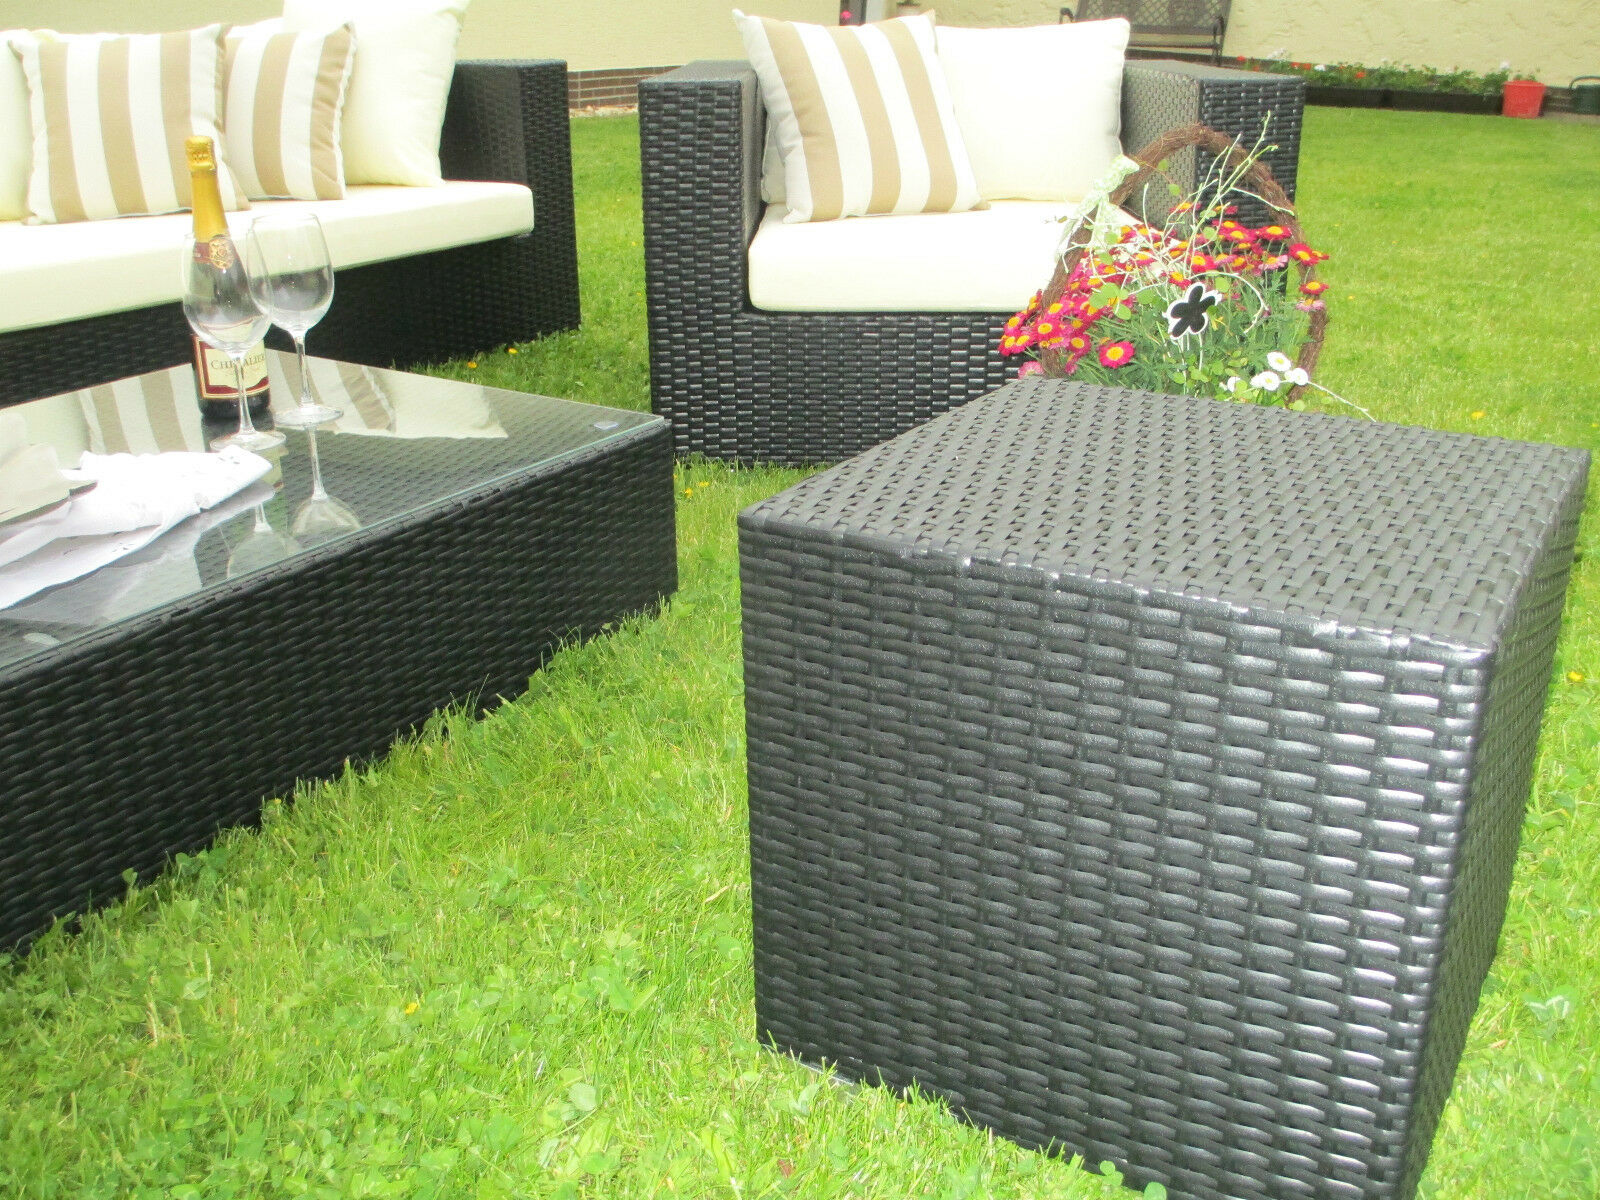 exclusive garten lounge xxl sitzgruppe gartenm bel terrassenm bel poly rattan eur 999 00. Black Bedroom Furniture Sets. Home Design Ideas